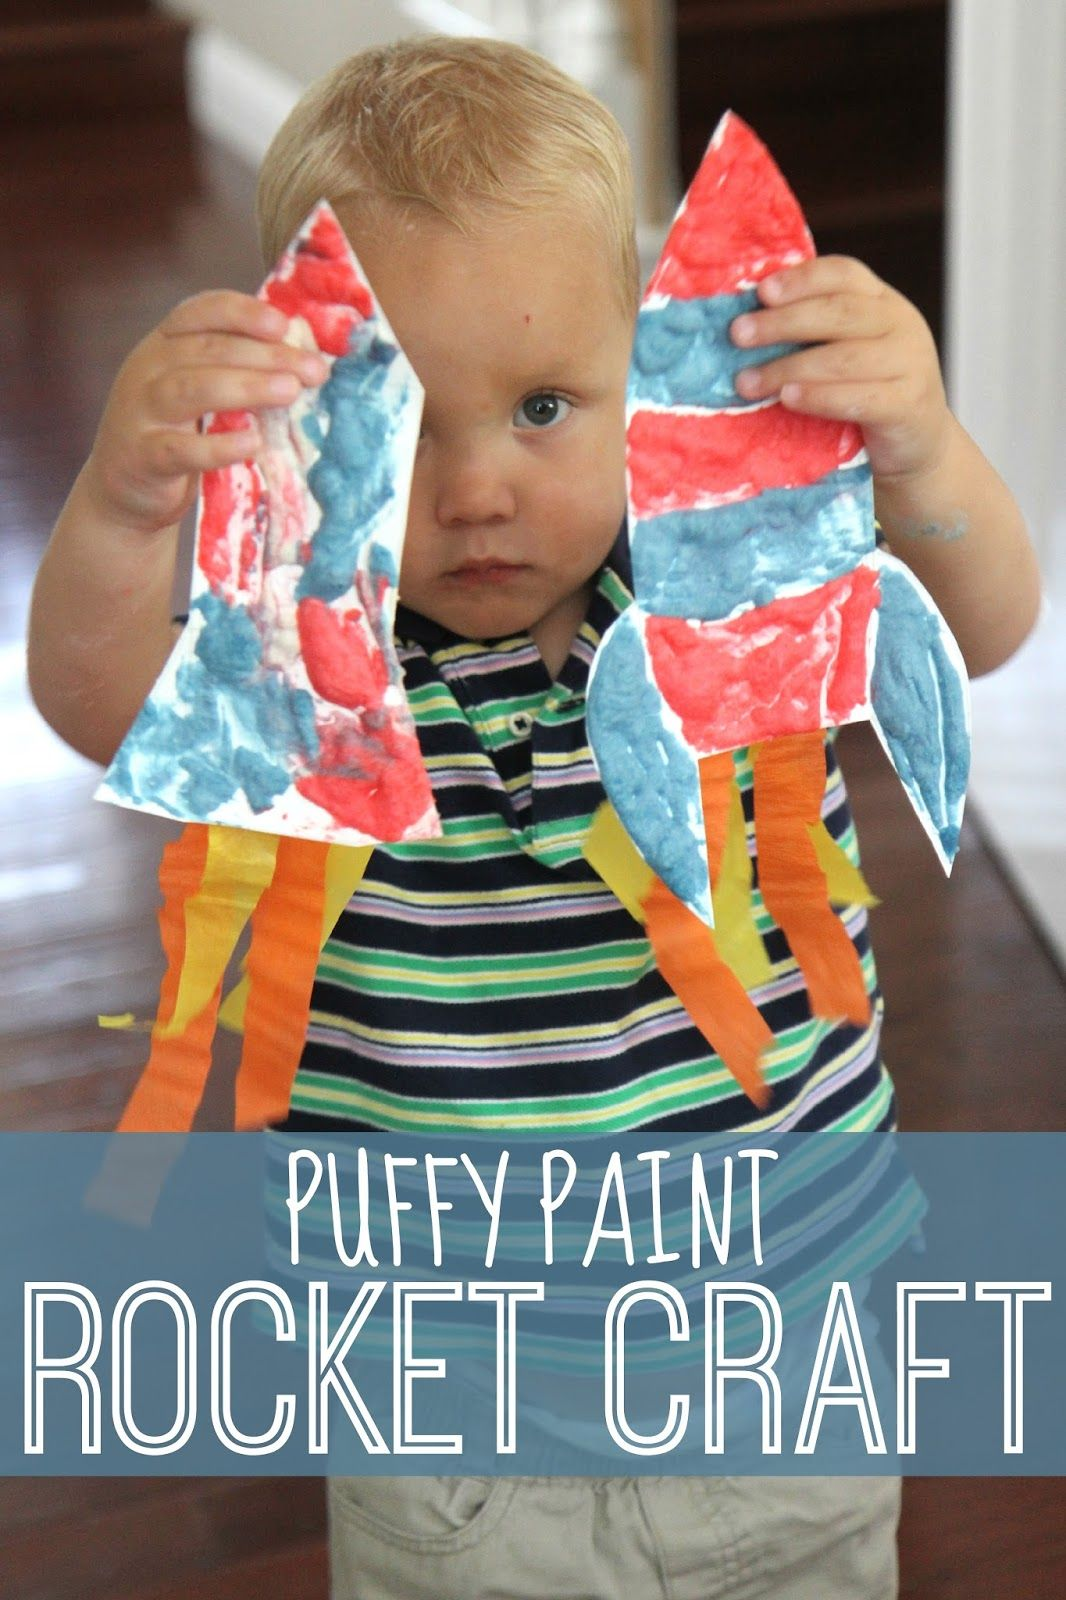 puffy paint rocket craft rocket craft puffy paint and kid